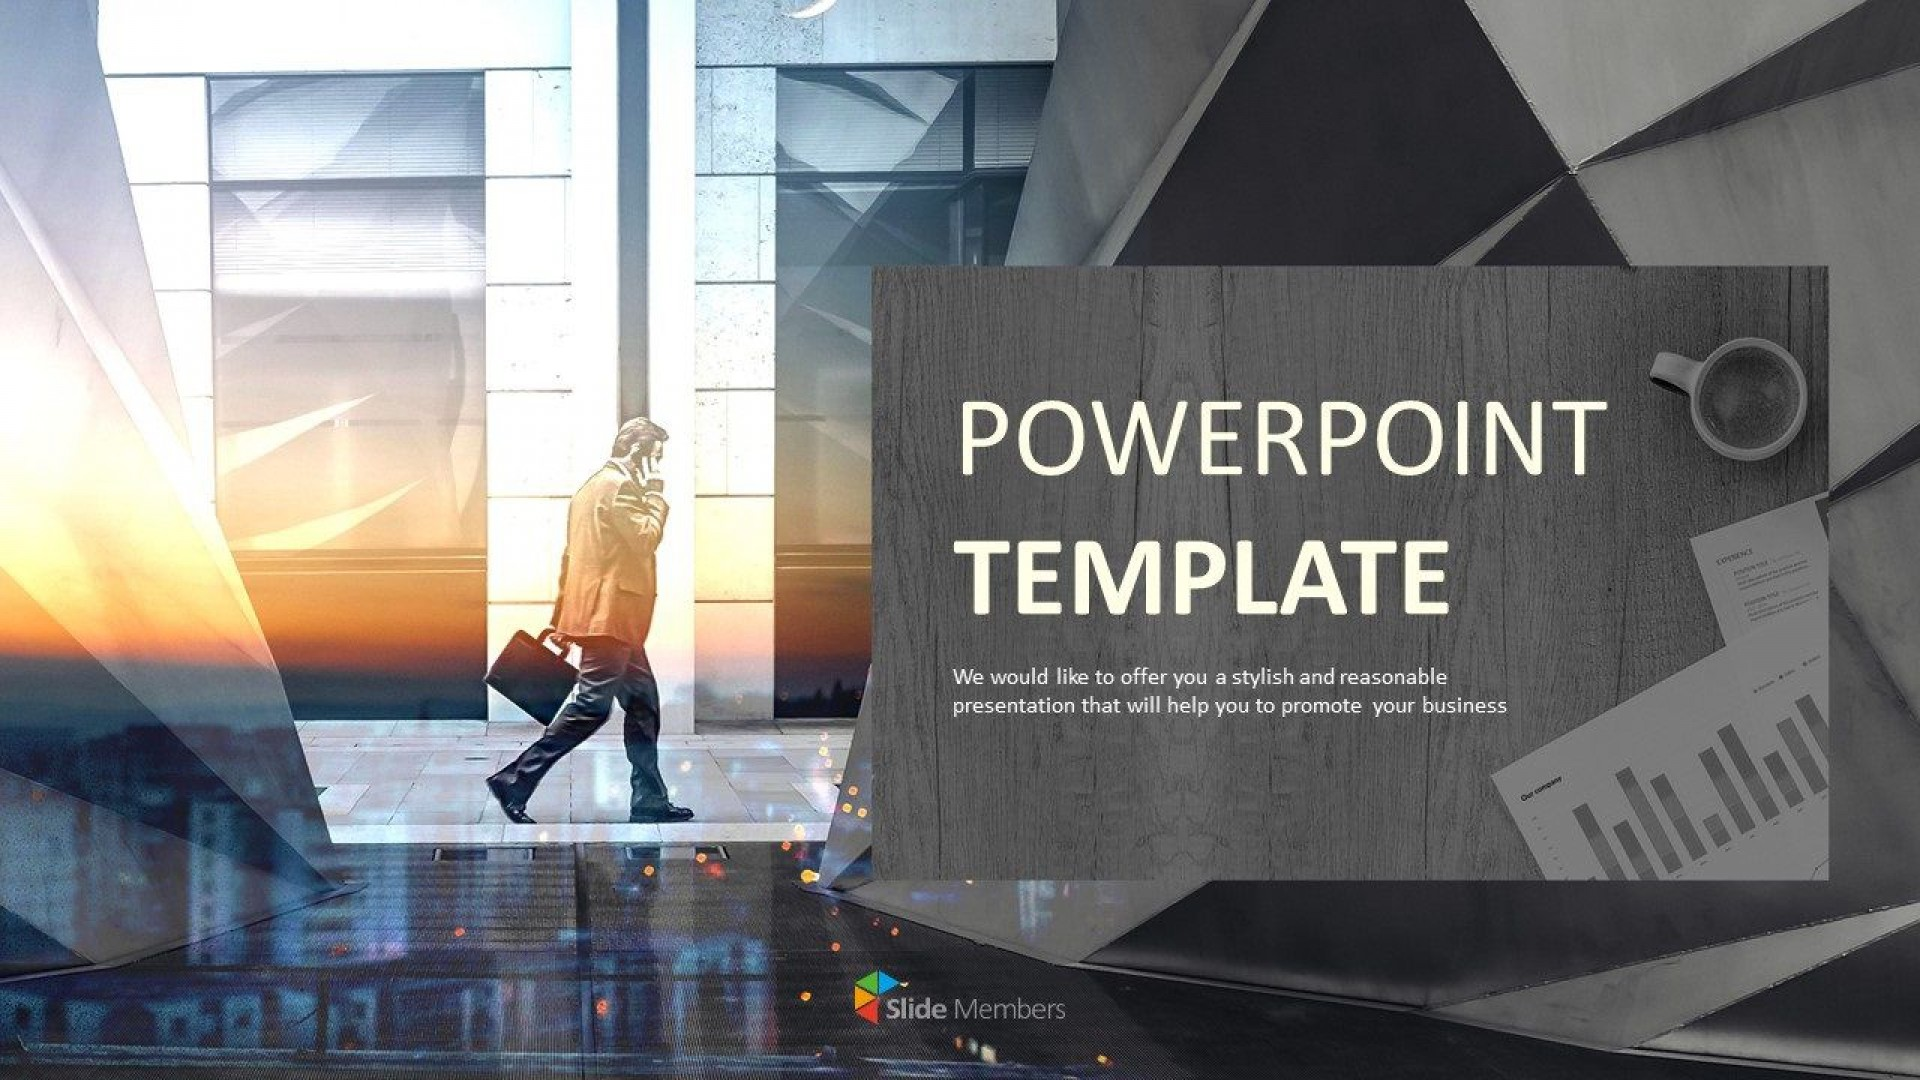 009 Astounding Poster Presentation Template Free Download Ppt High Definition 1920